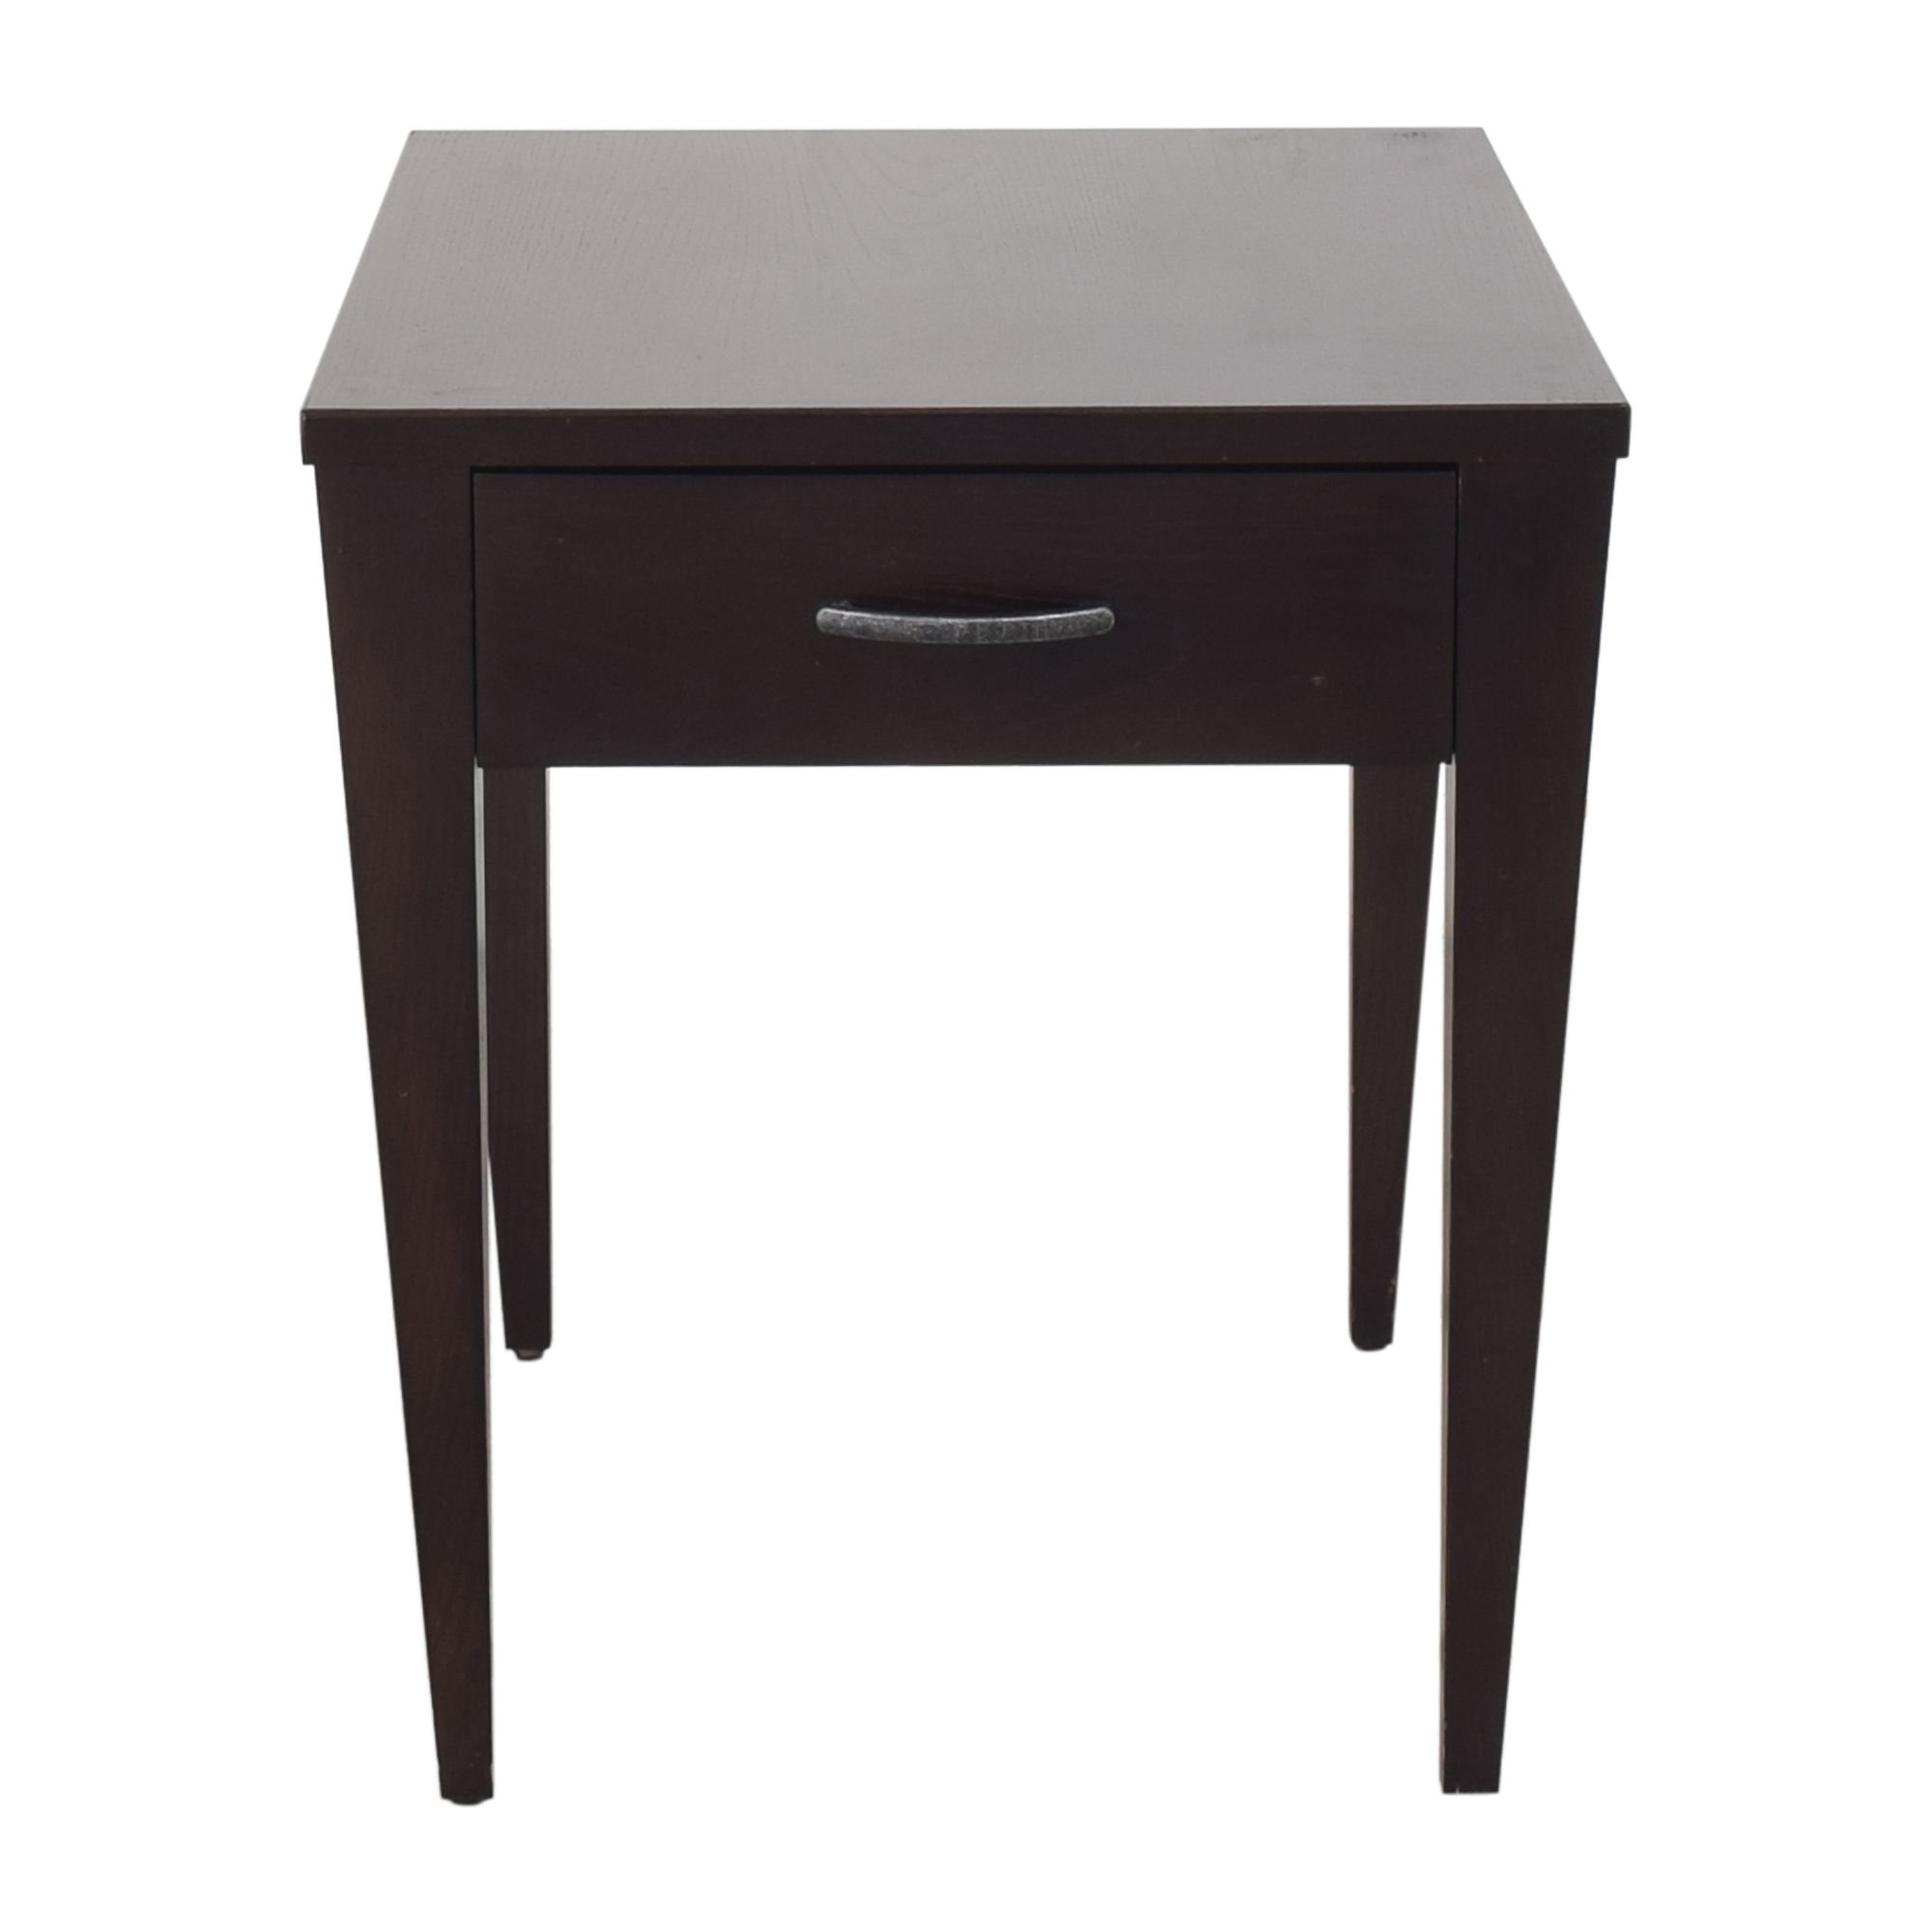 Ethan Allen Single Drawer End Table sale